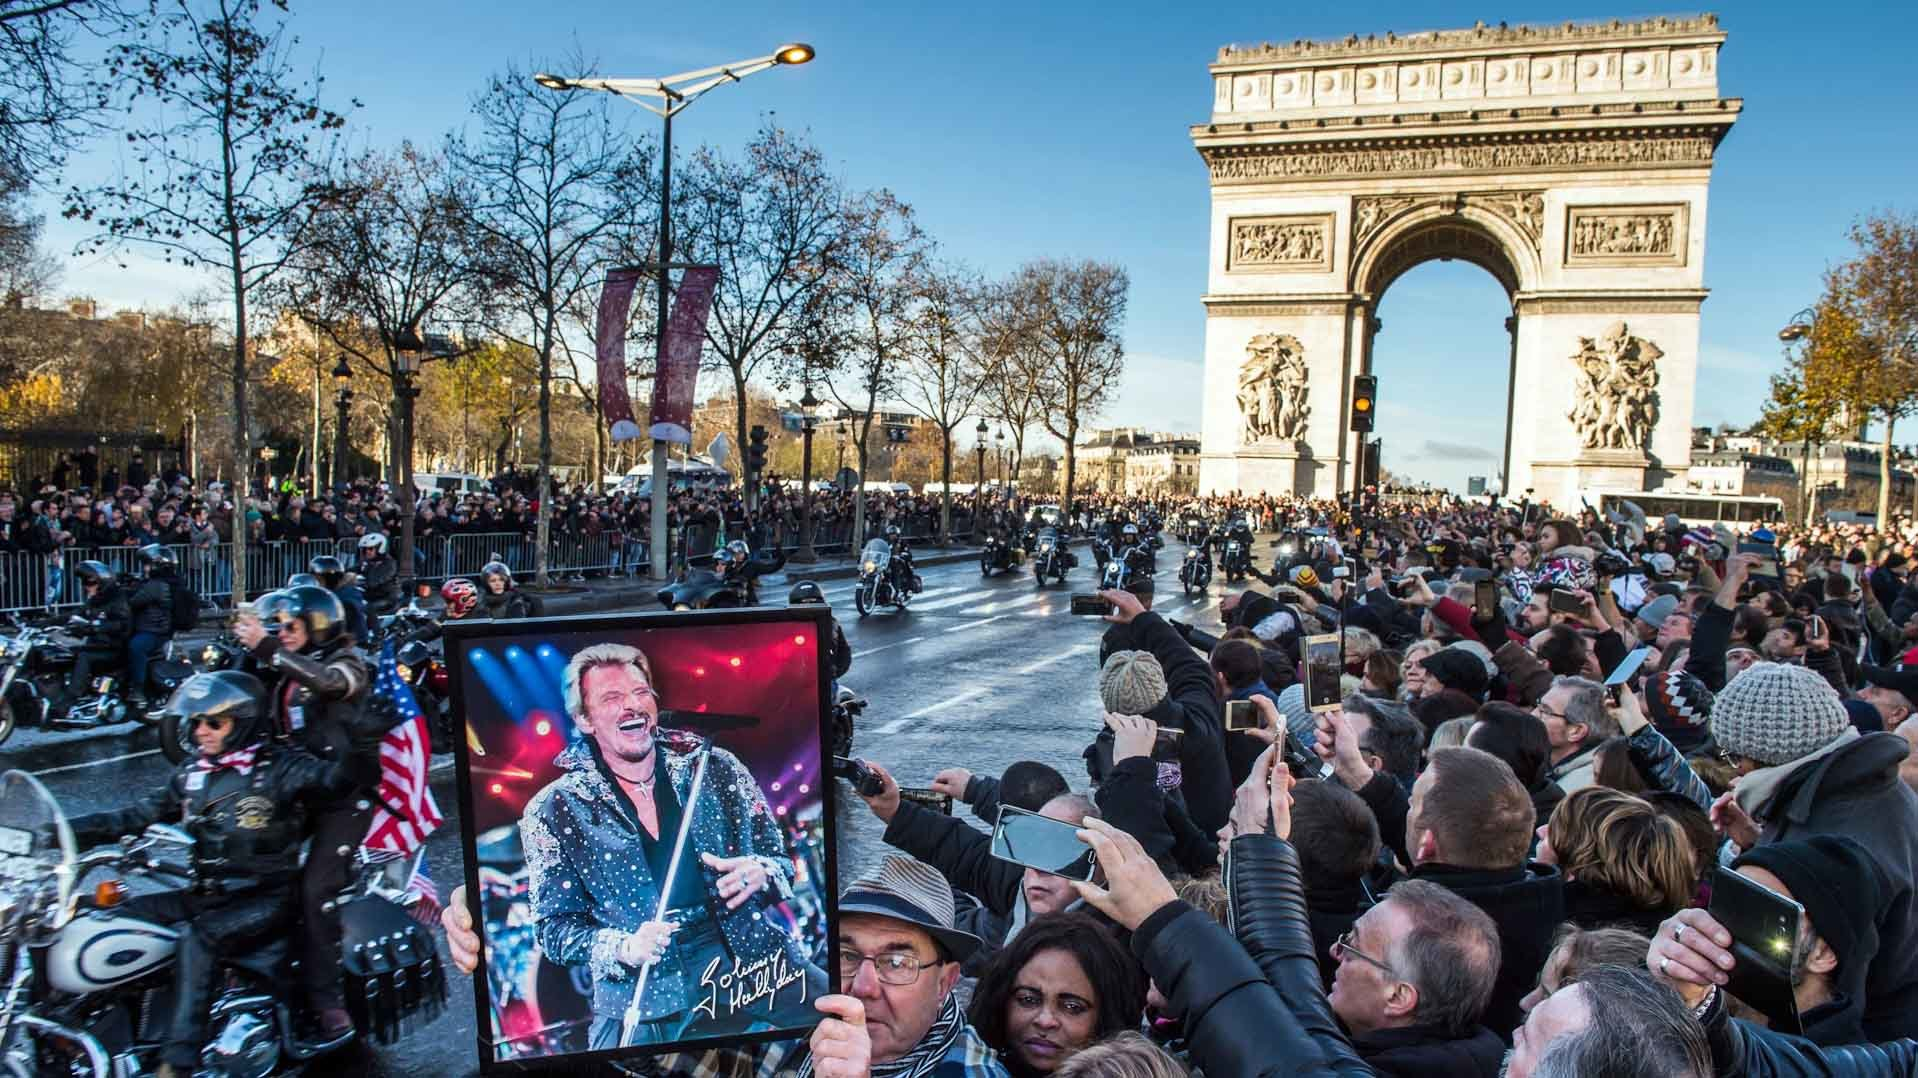 Paris (France), 09/12/2017.- A fan holds a poster of French singer Johnny Hallyday during his funeral procession at the Champs Elysees in Paris, France, 09 December 2017. Johnny Hallyday, France's biggest rock star, has died of cancer on 06 December. He was 74. (Francia) EFE/EPA/CHRISTOPHE PETIT TESSON